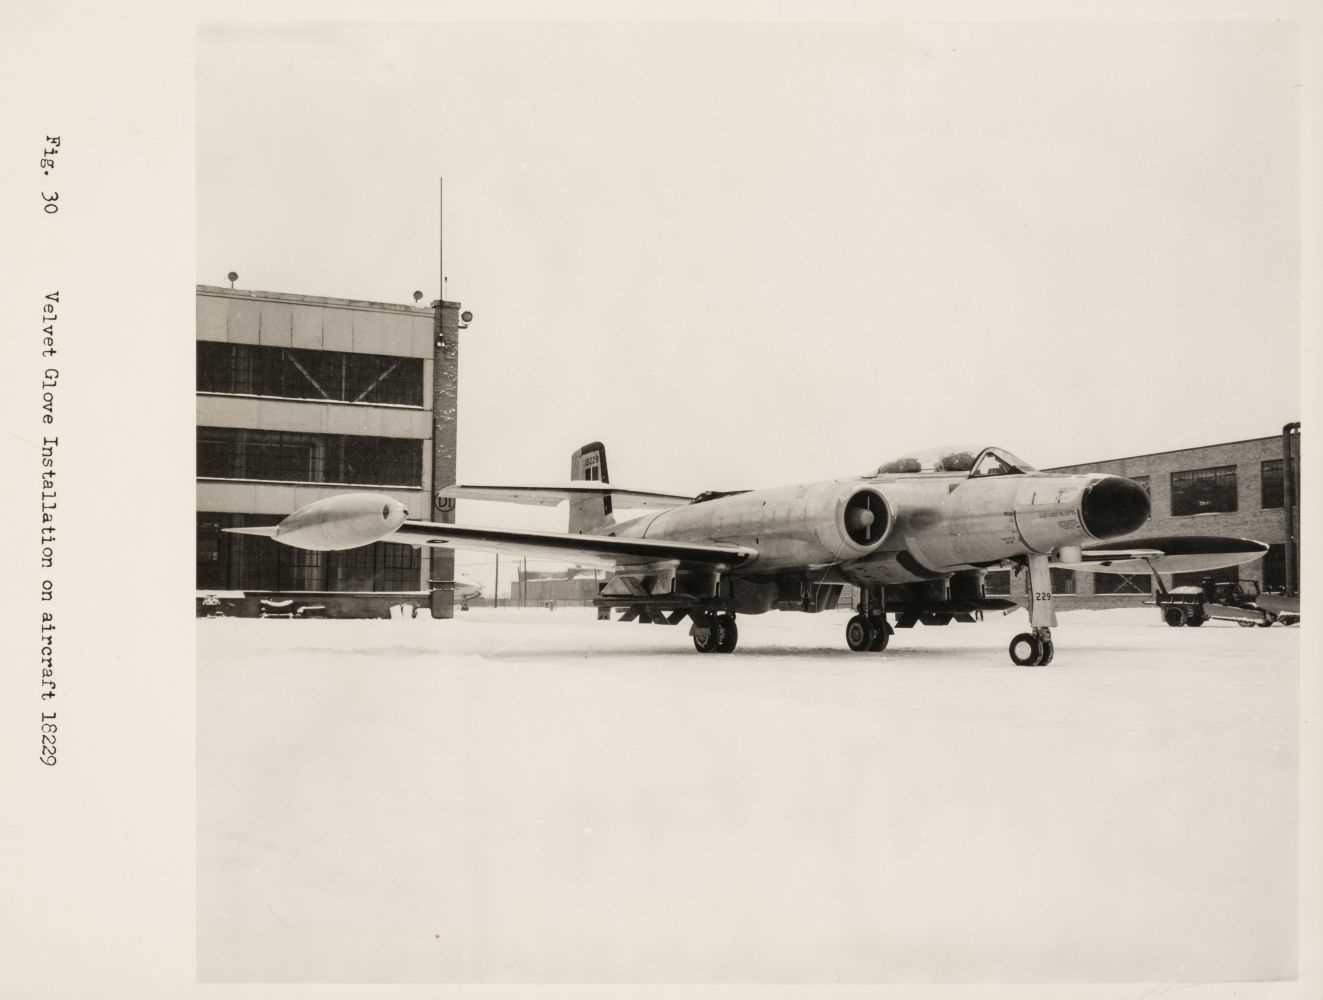 Lot 38 - CF-100. An archive relating to the Avro Canada CF-100